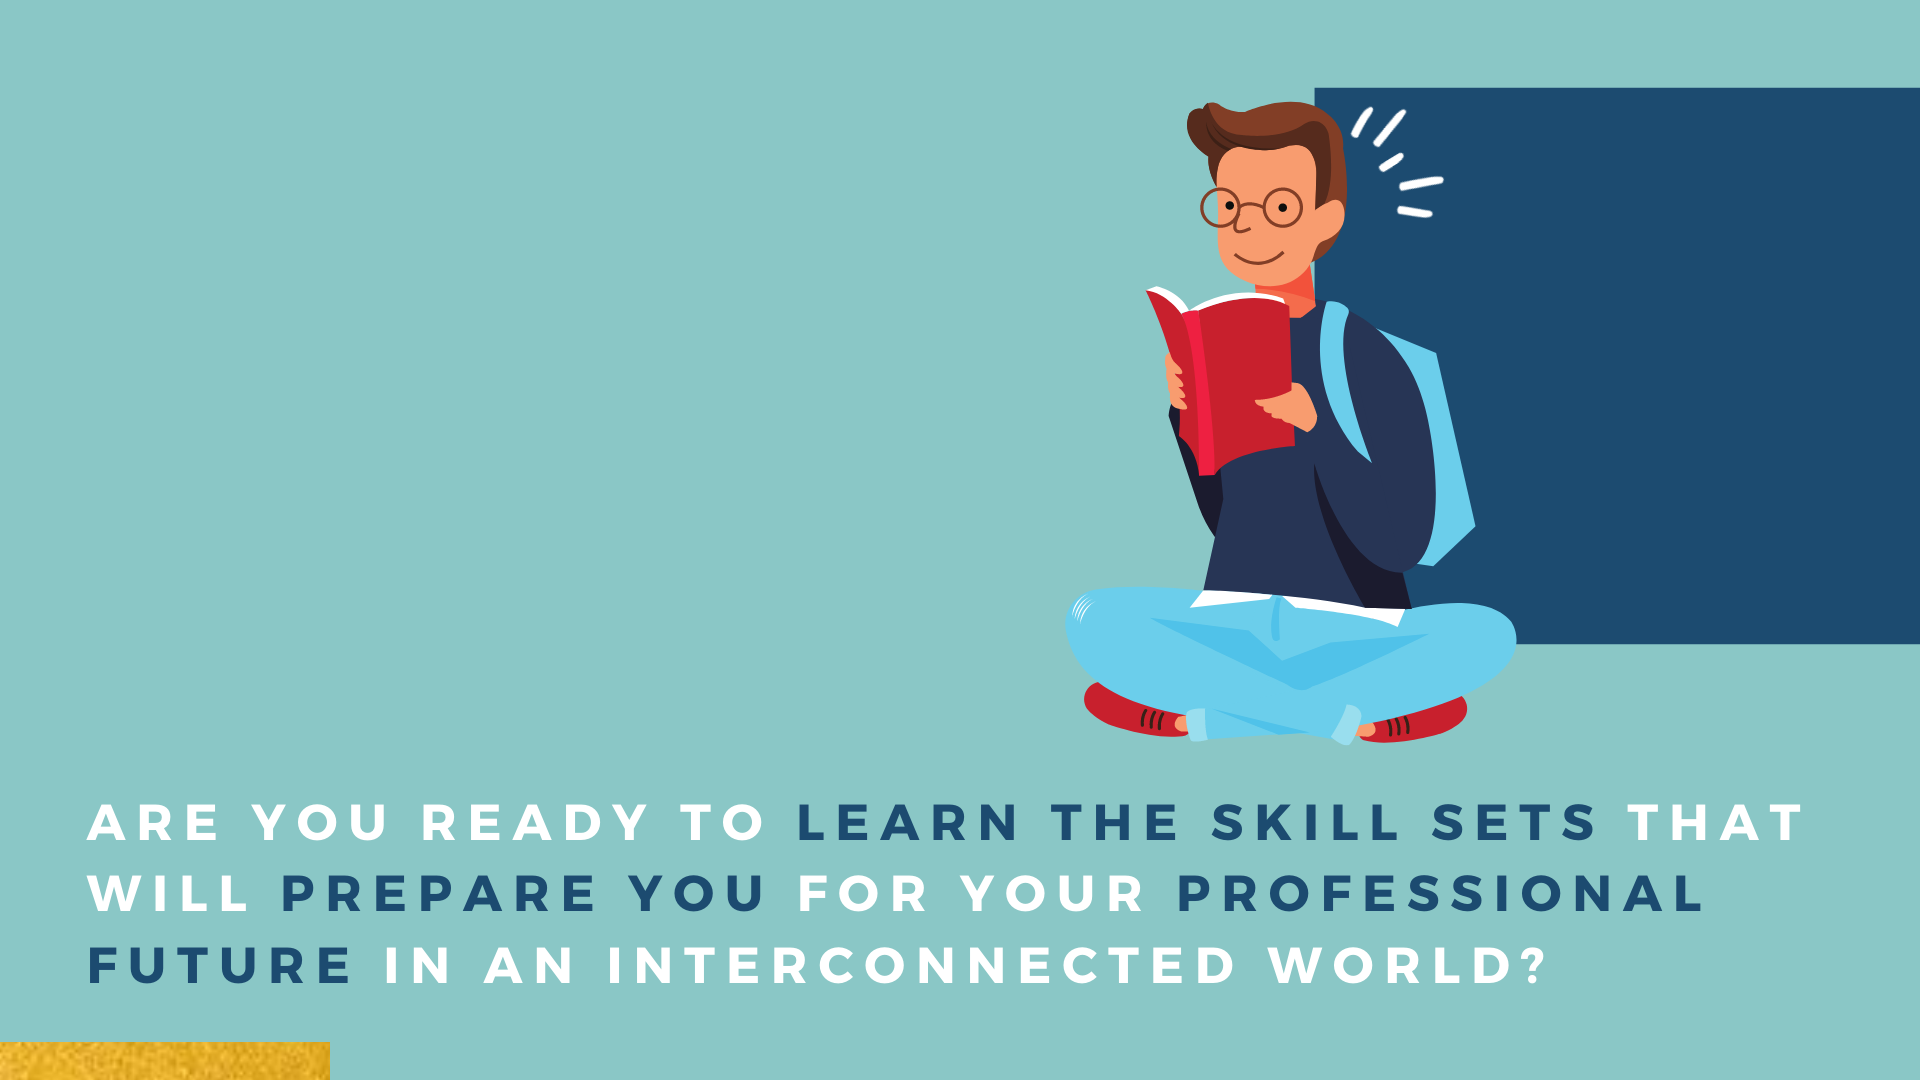 Are you ready to learn the skill sets that will prepare you for your professional future in an interconnected world?